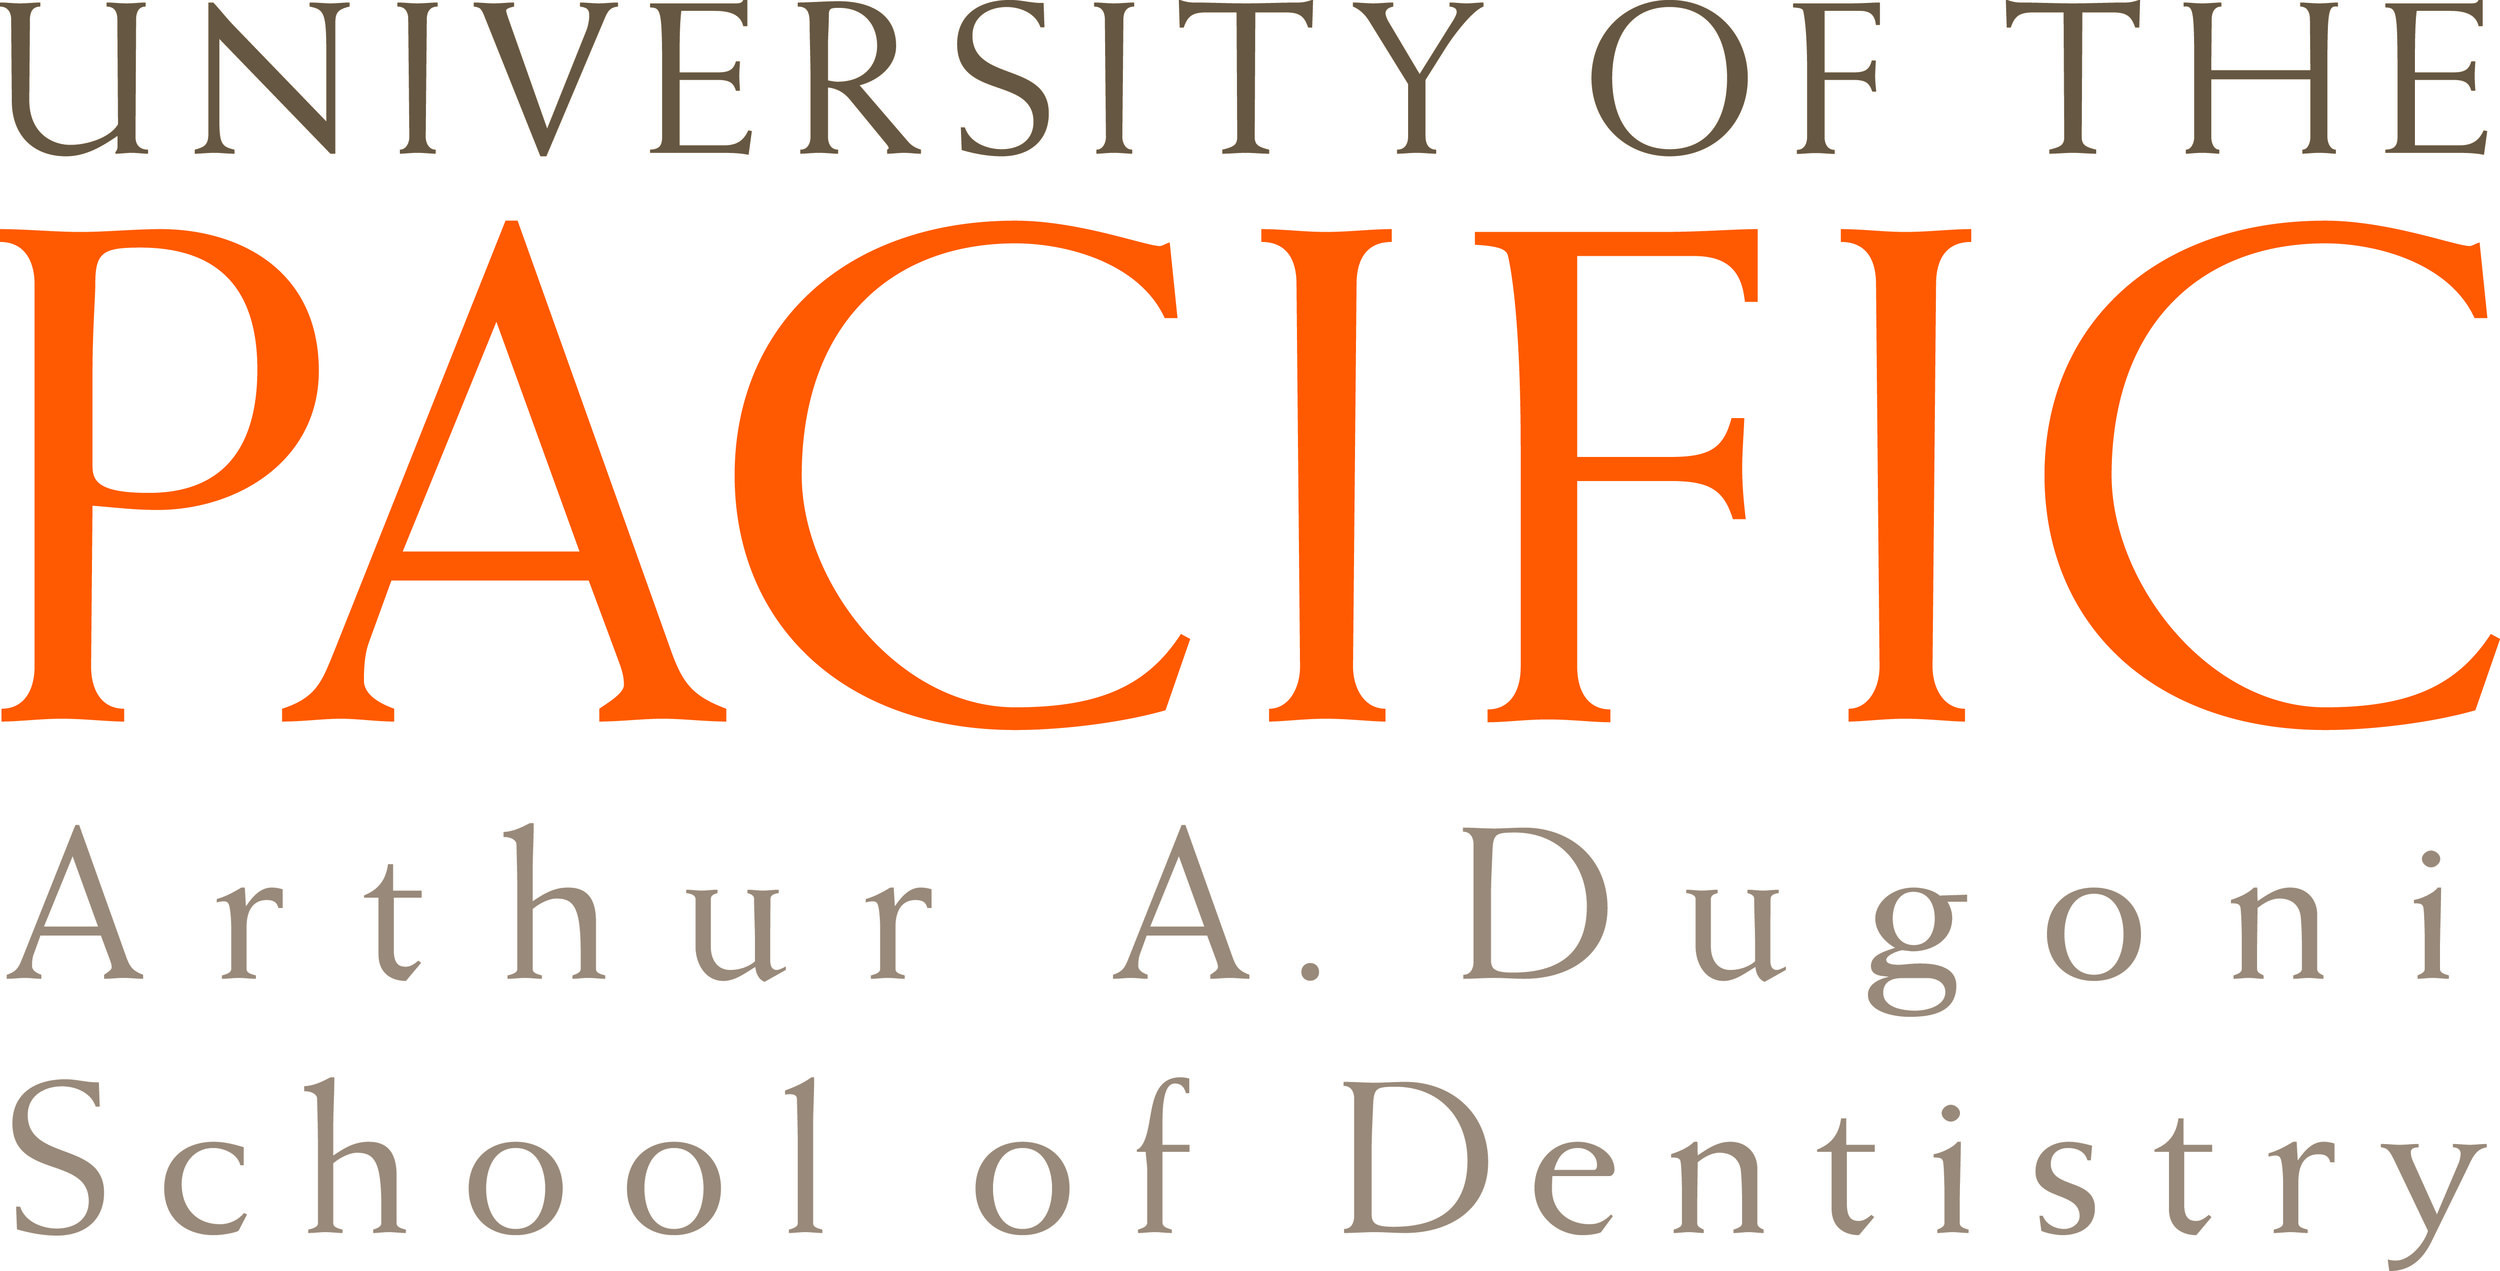 University of the Pacific | Arthur A. Dugoni School of Dentistry